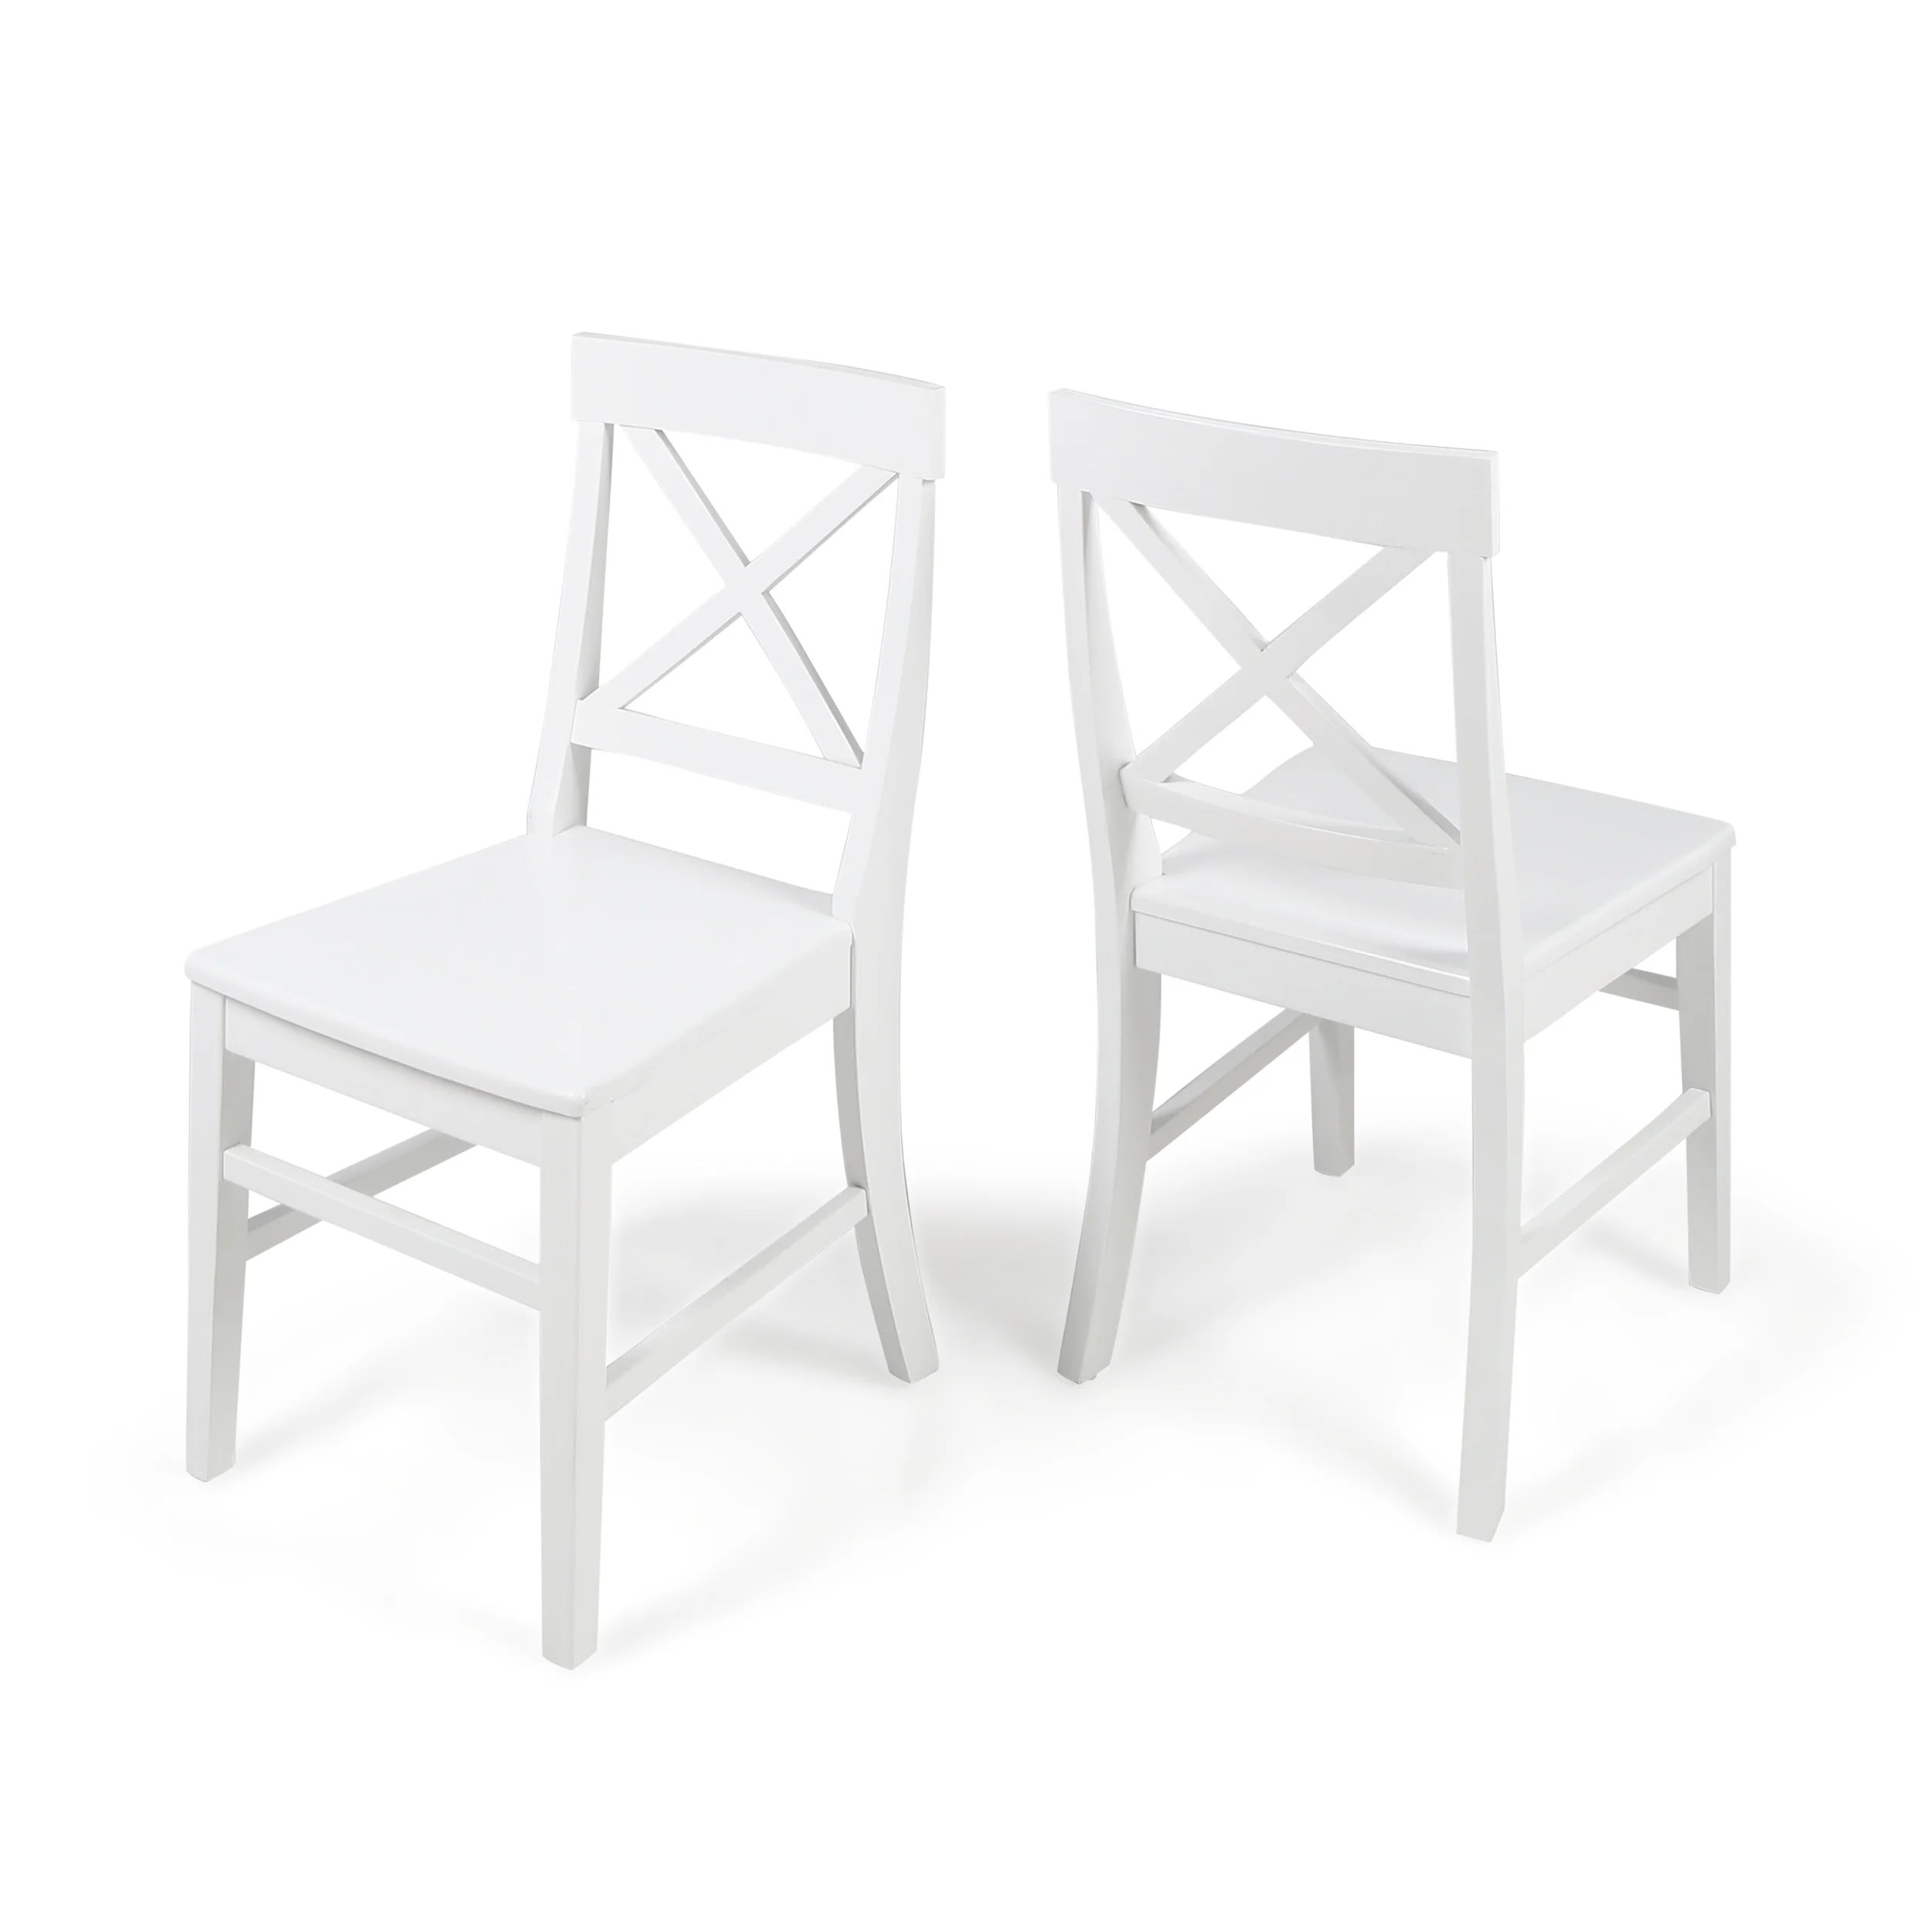 White Wooden Dining Chairs Roshan Farmhouse Acacia Wood Dining Chair Set Of 2 By Christopher Knight Home